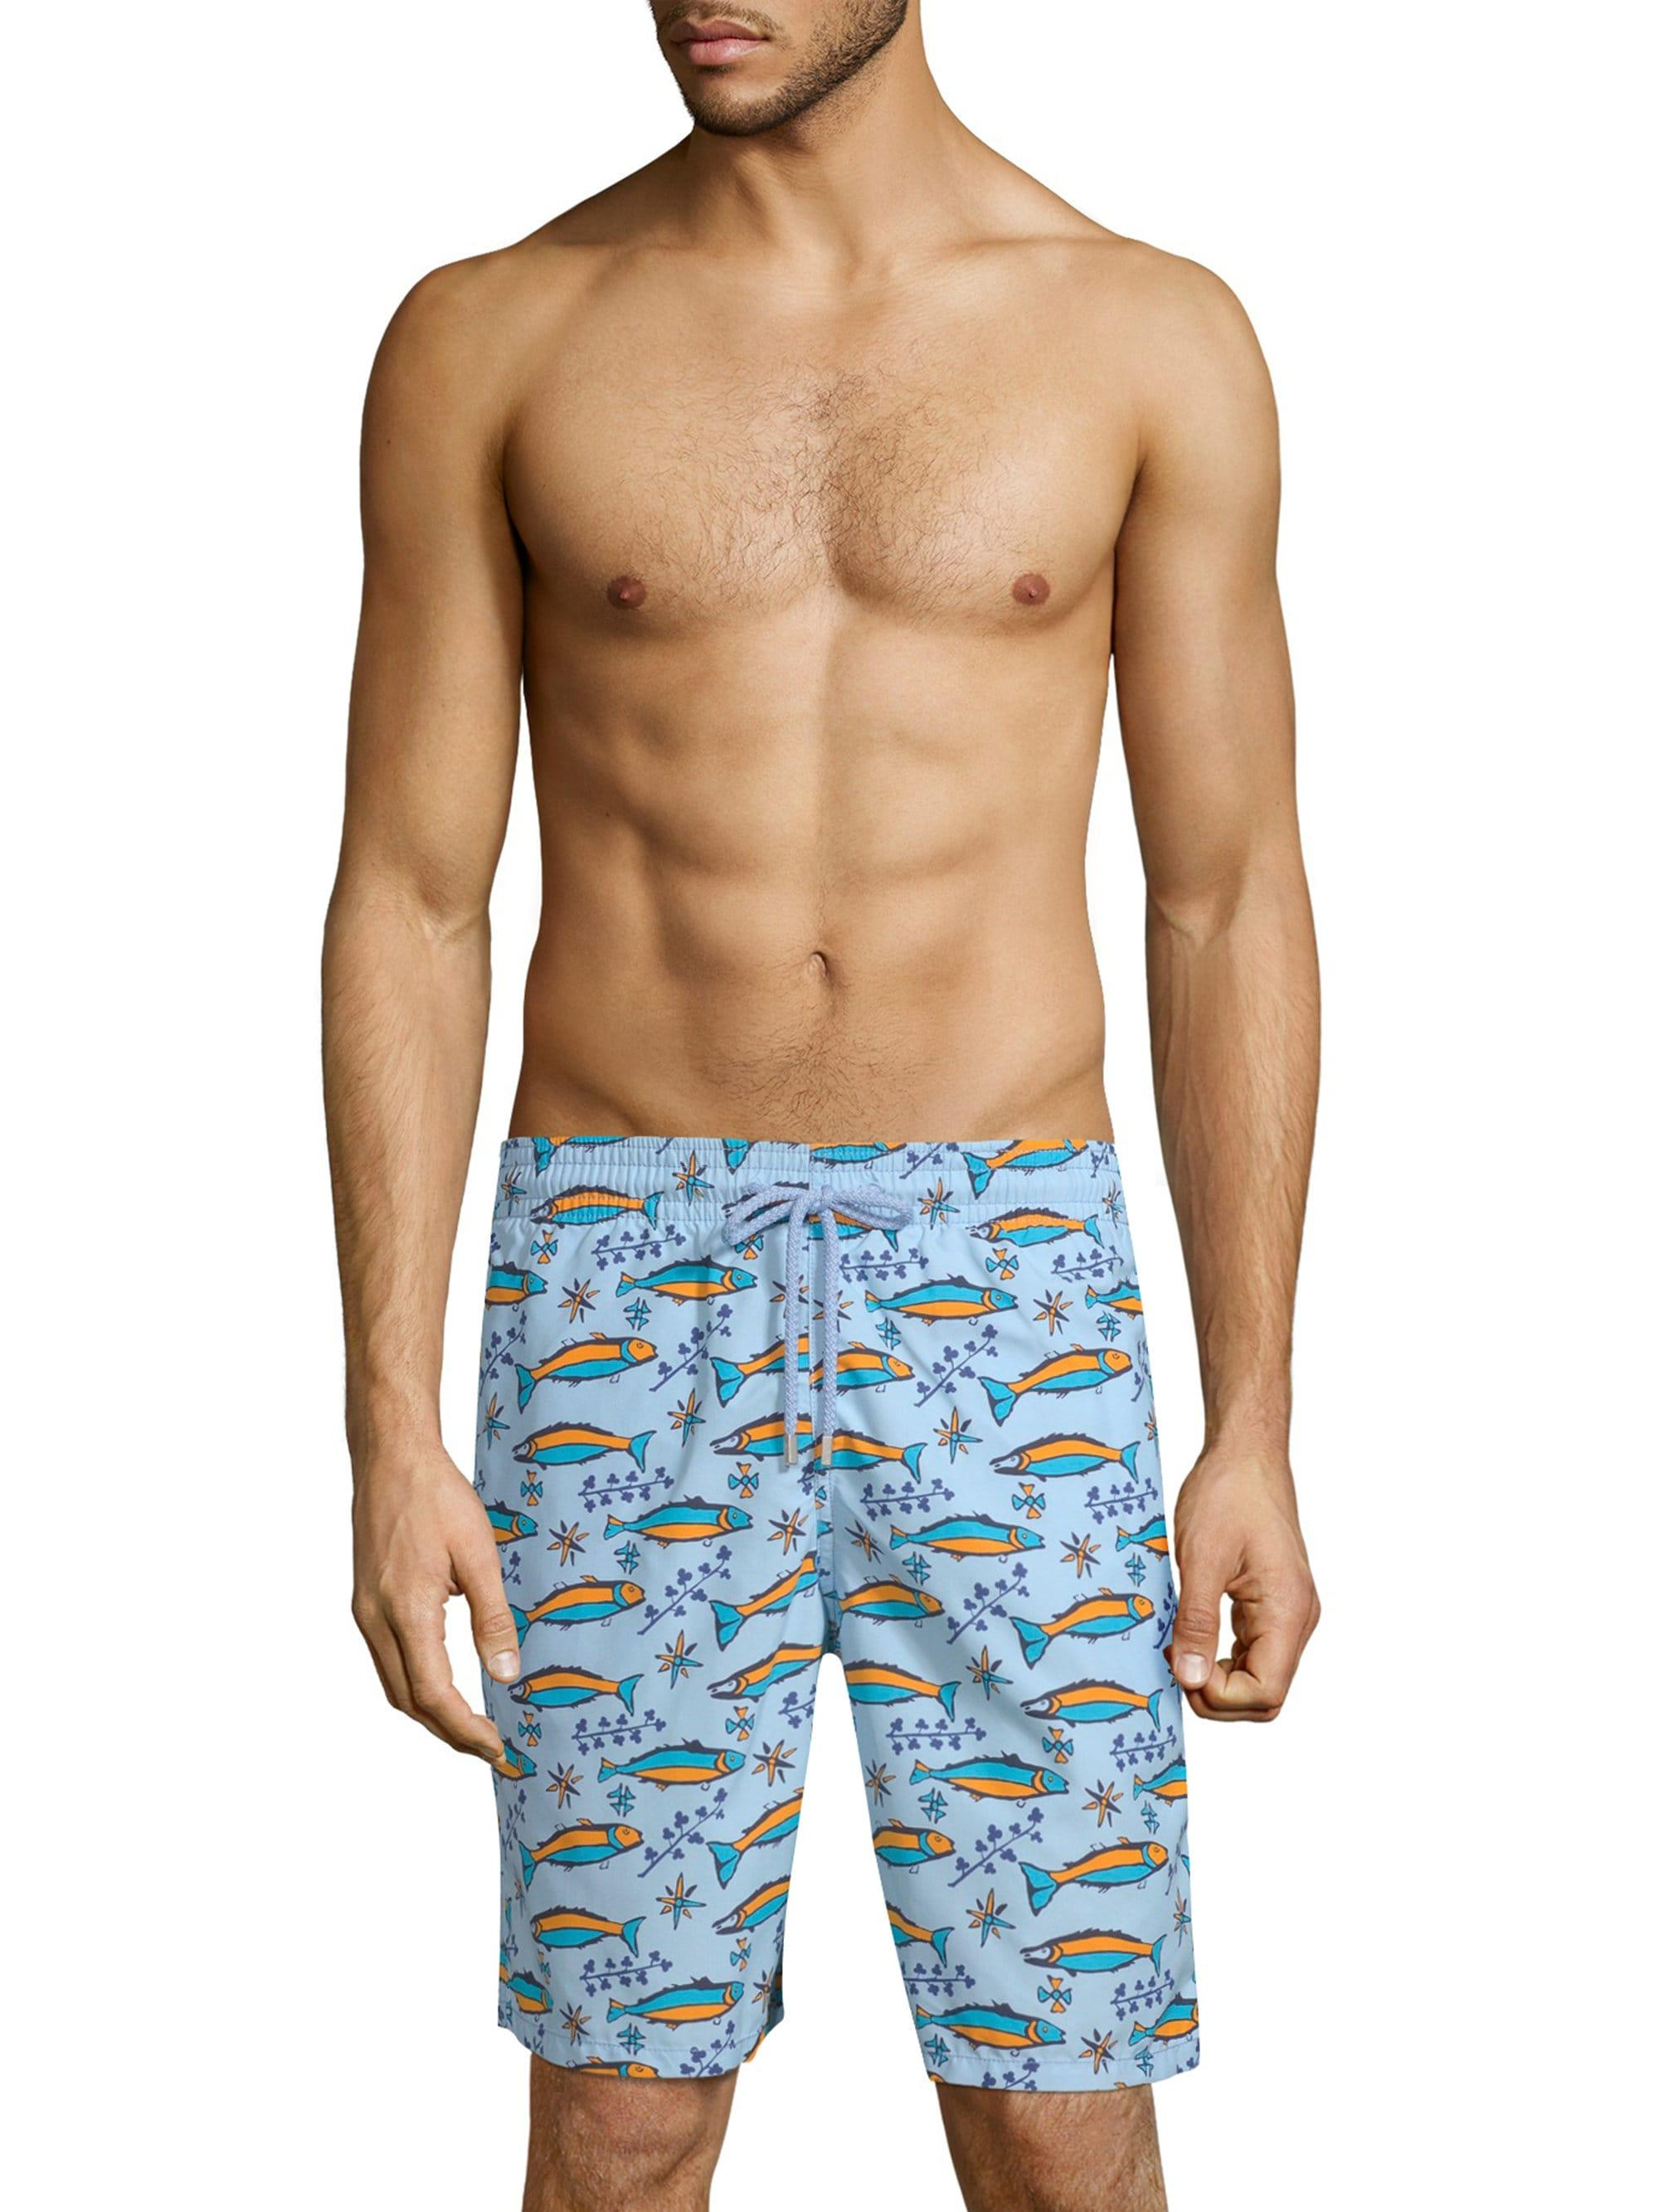 90301fe1e5 Lyst - Vilebrequin Sardine Print Swim Shorts in Blue for Men